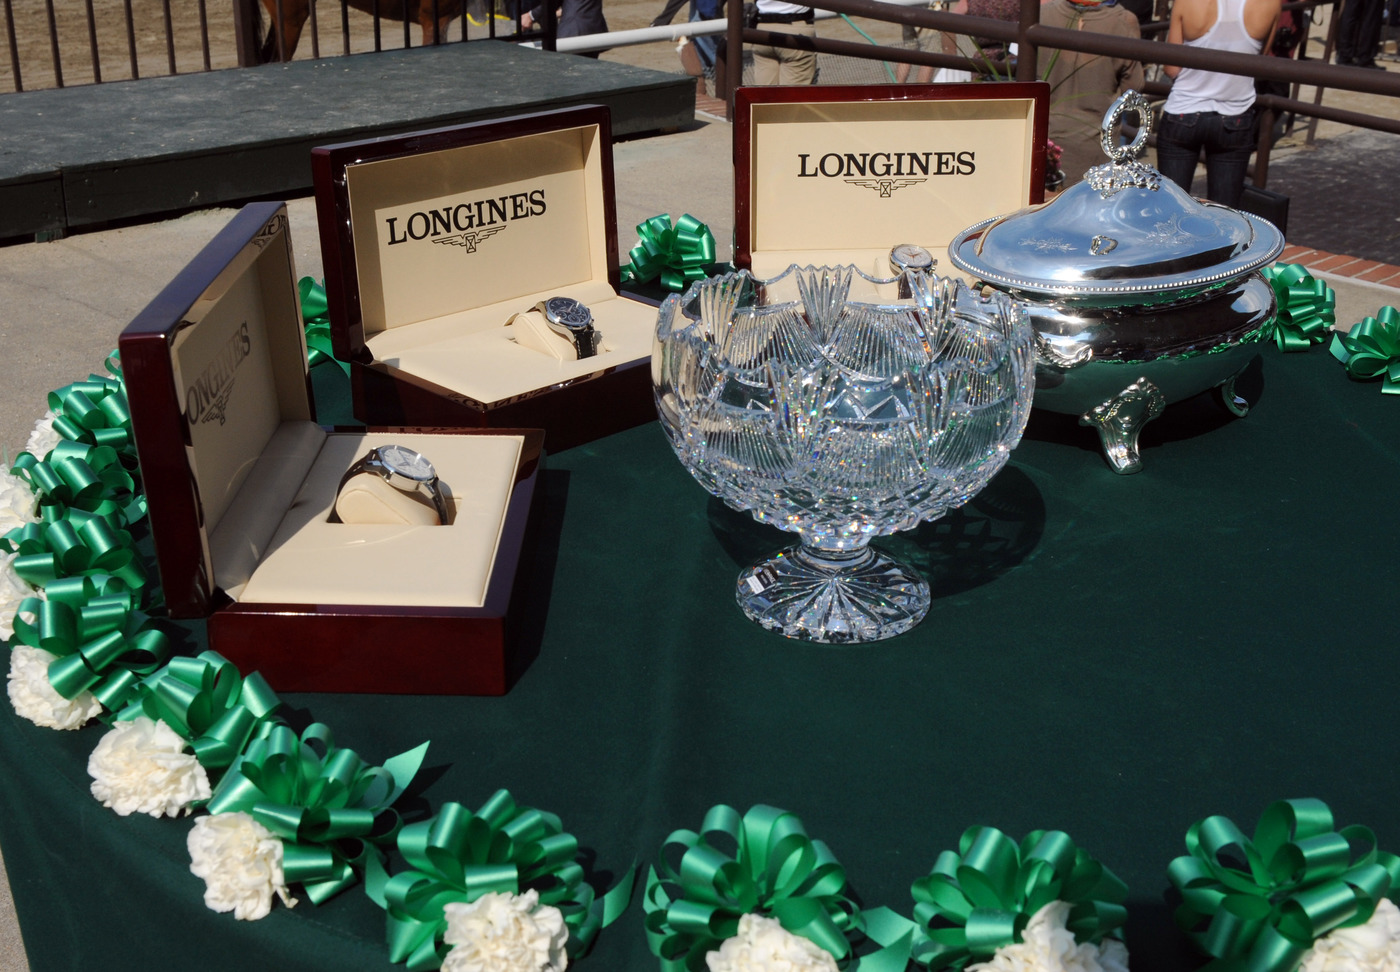 Longines Flat Racing Event: Longines, Official Watch of the 2012 Belmont Stakes 2